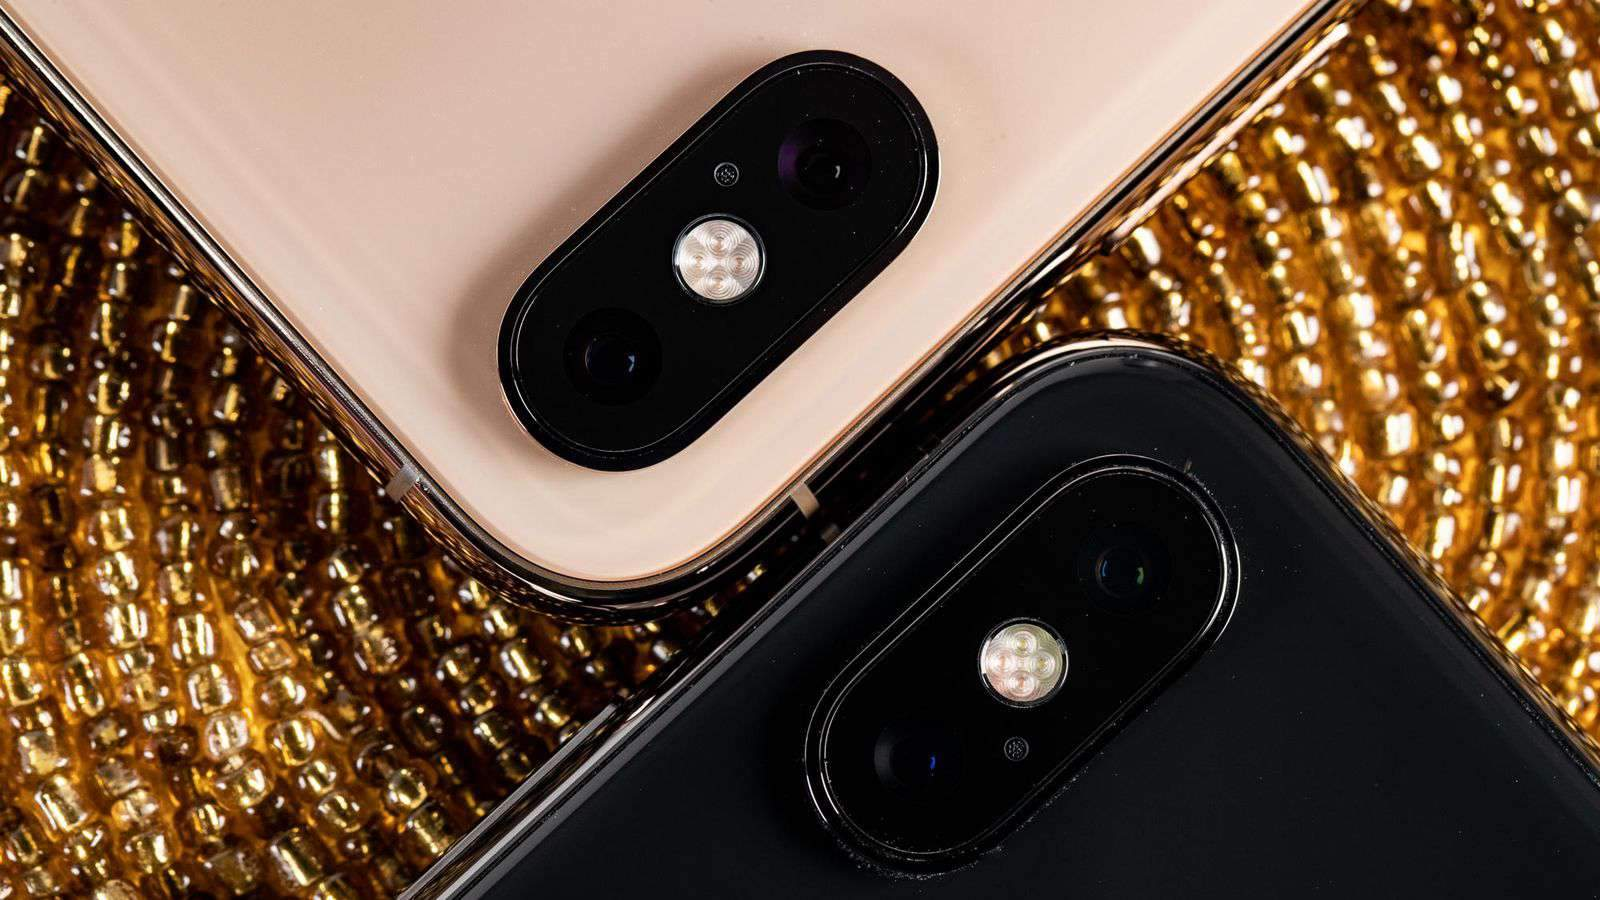 2018 iPhone Models: What Is the Best iPhone Camera? | Burkley Case